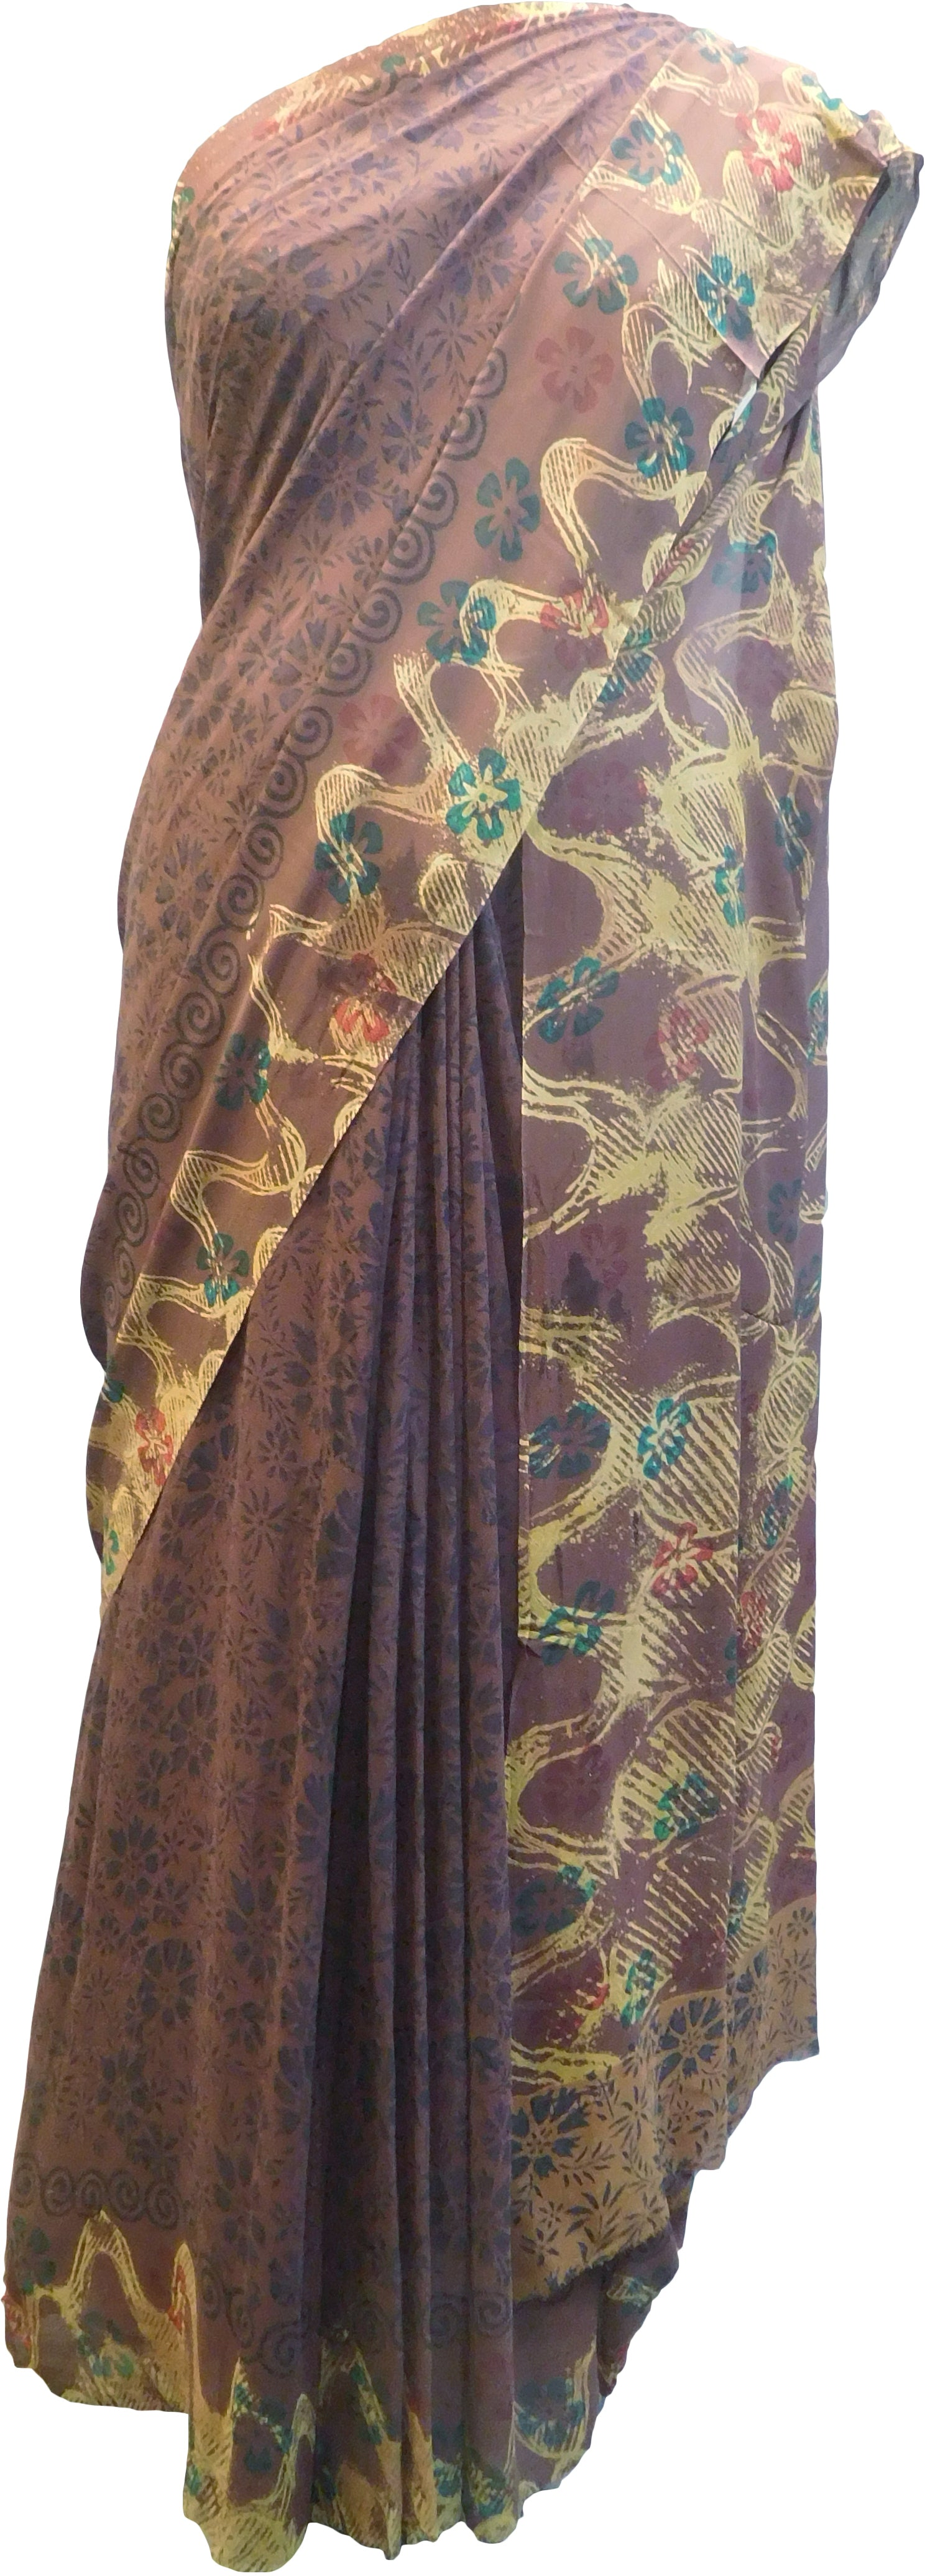 Multicolor Designer Wedding Partywear Pure Crepe Hand Brush Reprinted Kolkata Saree Sari With Blouse Piece RP290